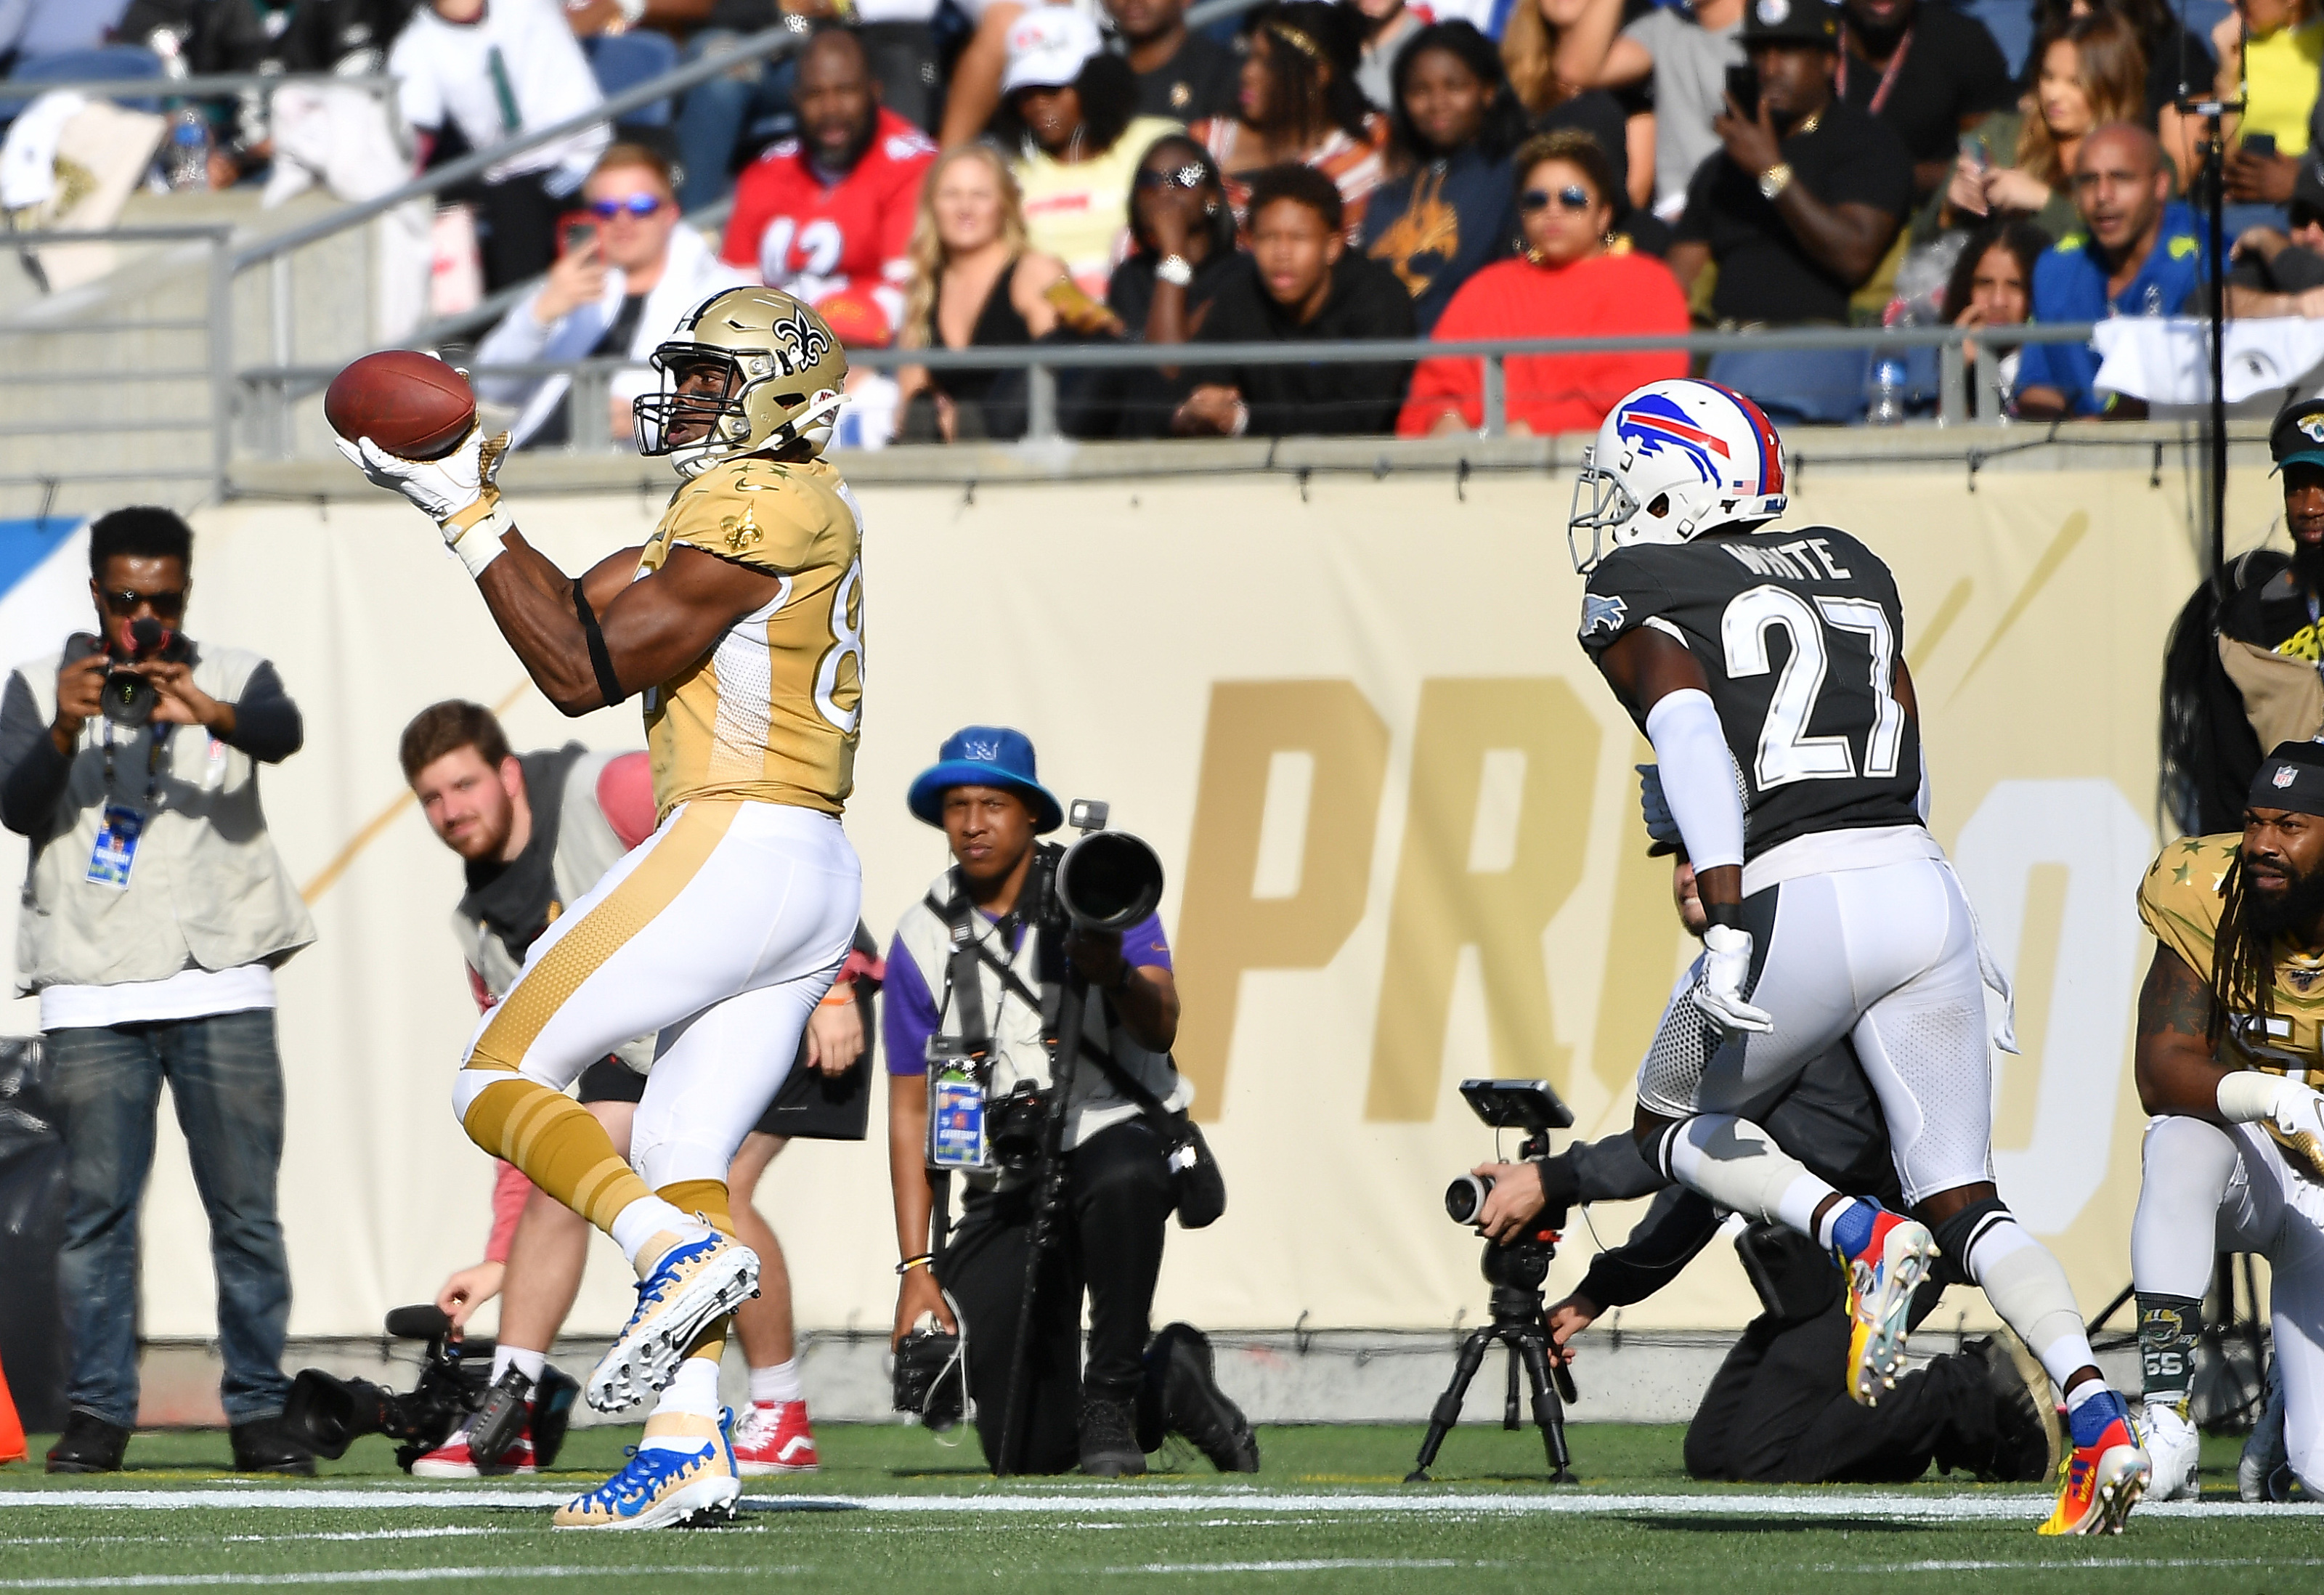 Recapping the Buffalo Bills performance in Pro Bowl 2020